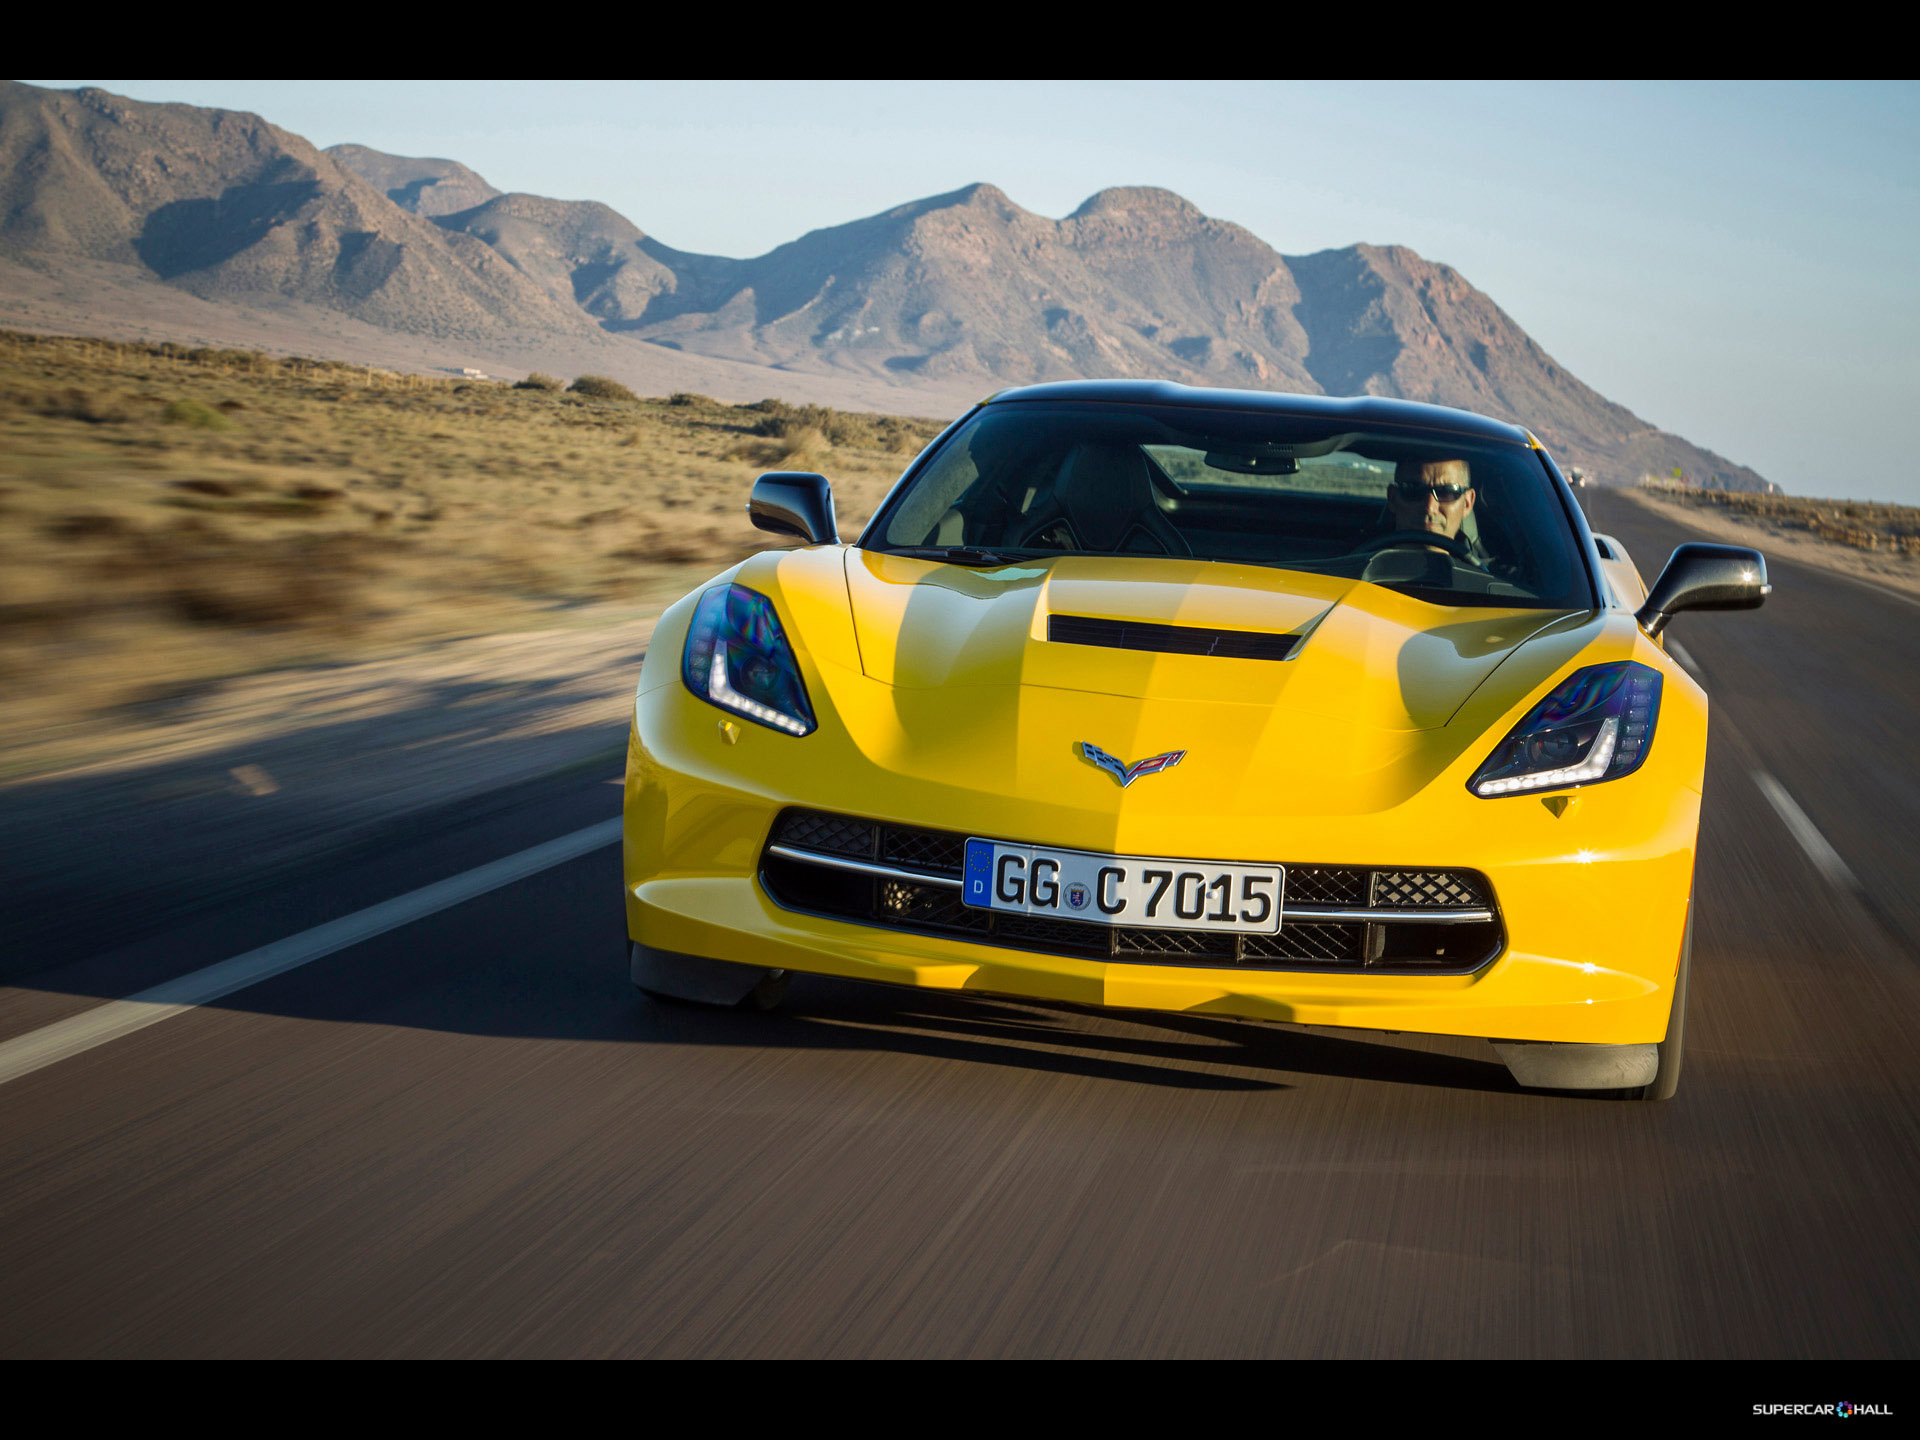 2019 Chevrolet Corvette Stingray EU Version photo - 1